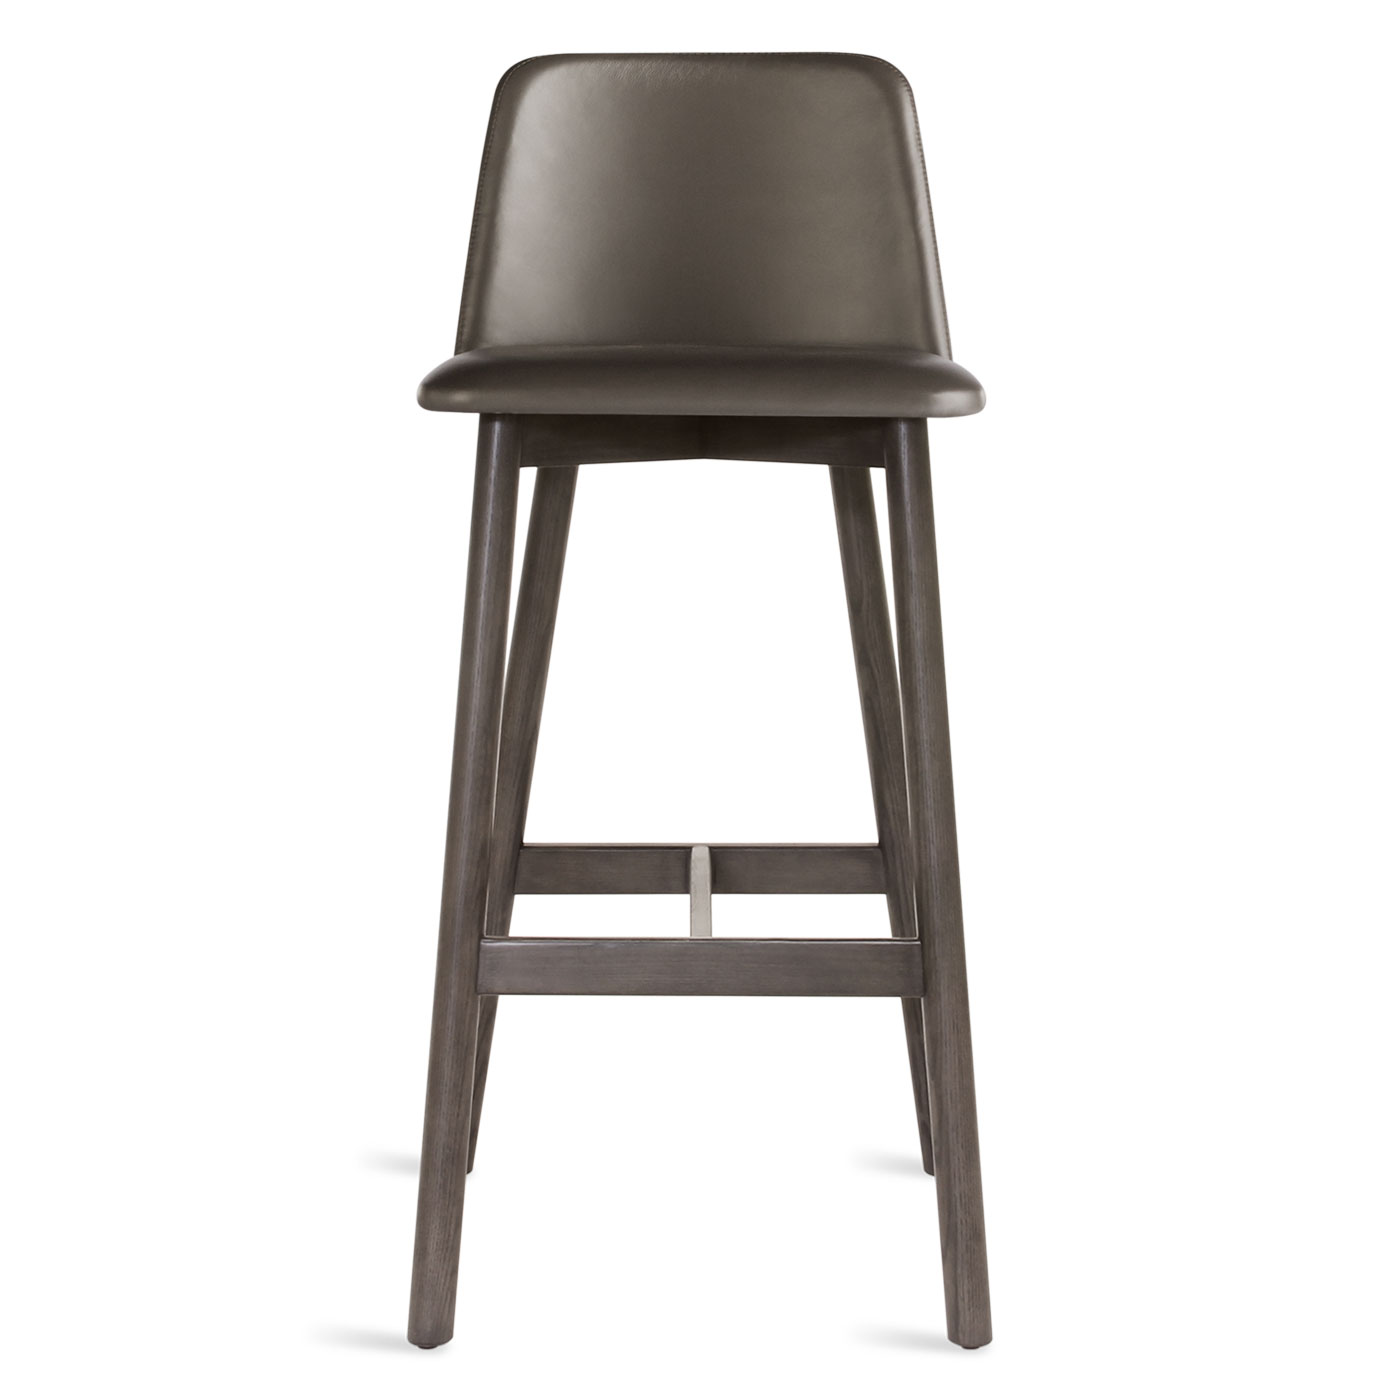 Amazing leather bar stools for home furniture with leather swivel bar stools